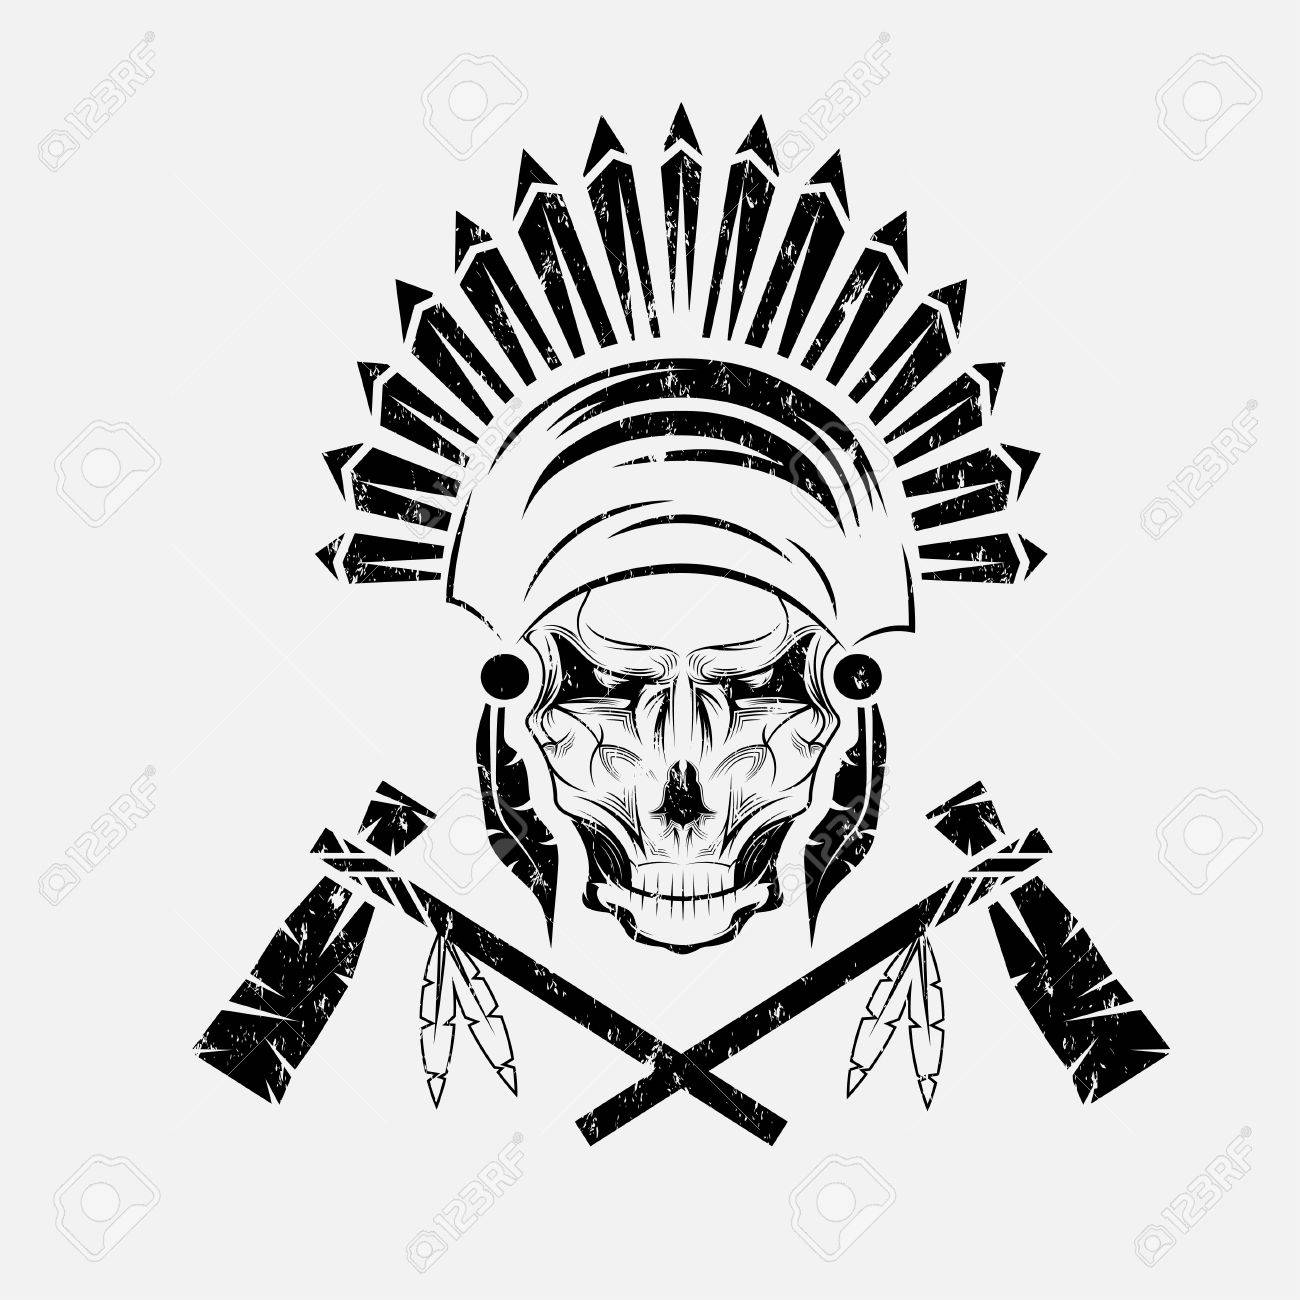 hight resolution of native american chief skull in tribal headdress with tomahawks stock vector 37763976